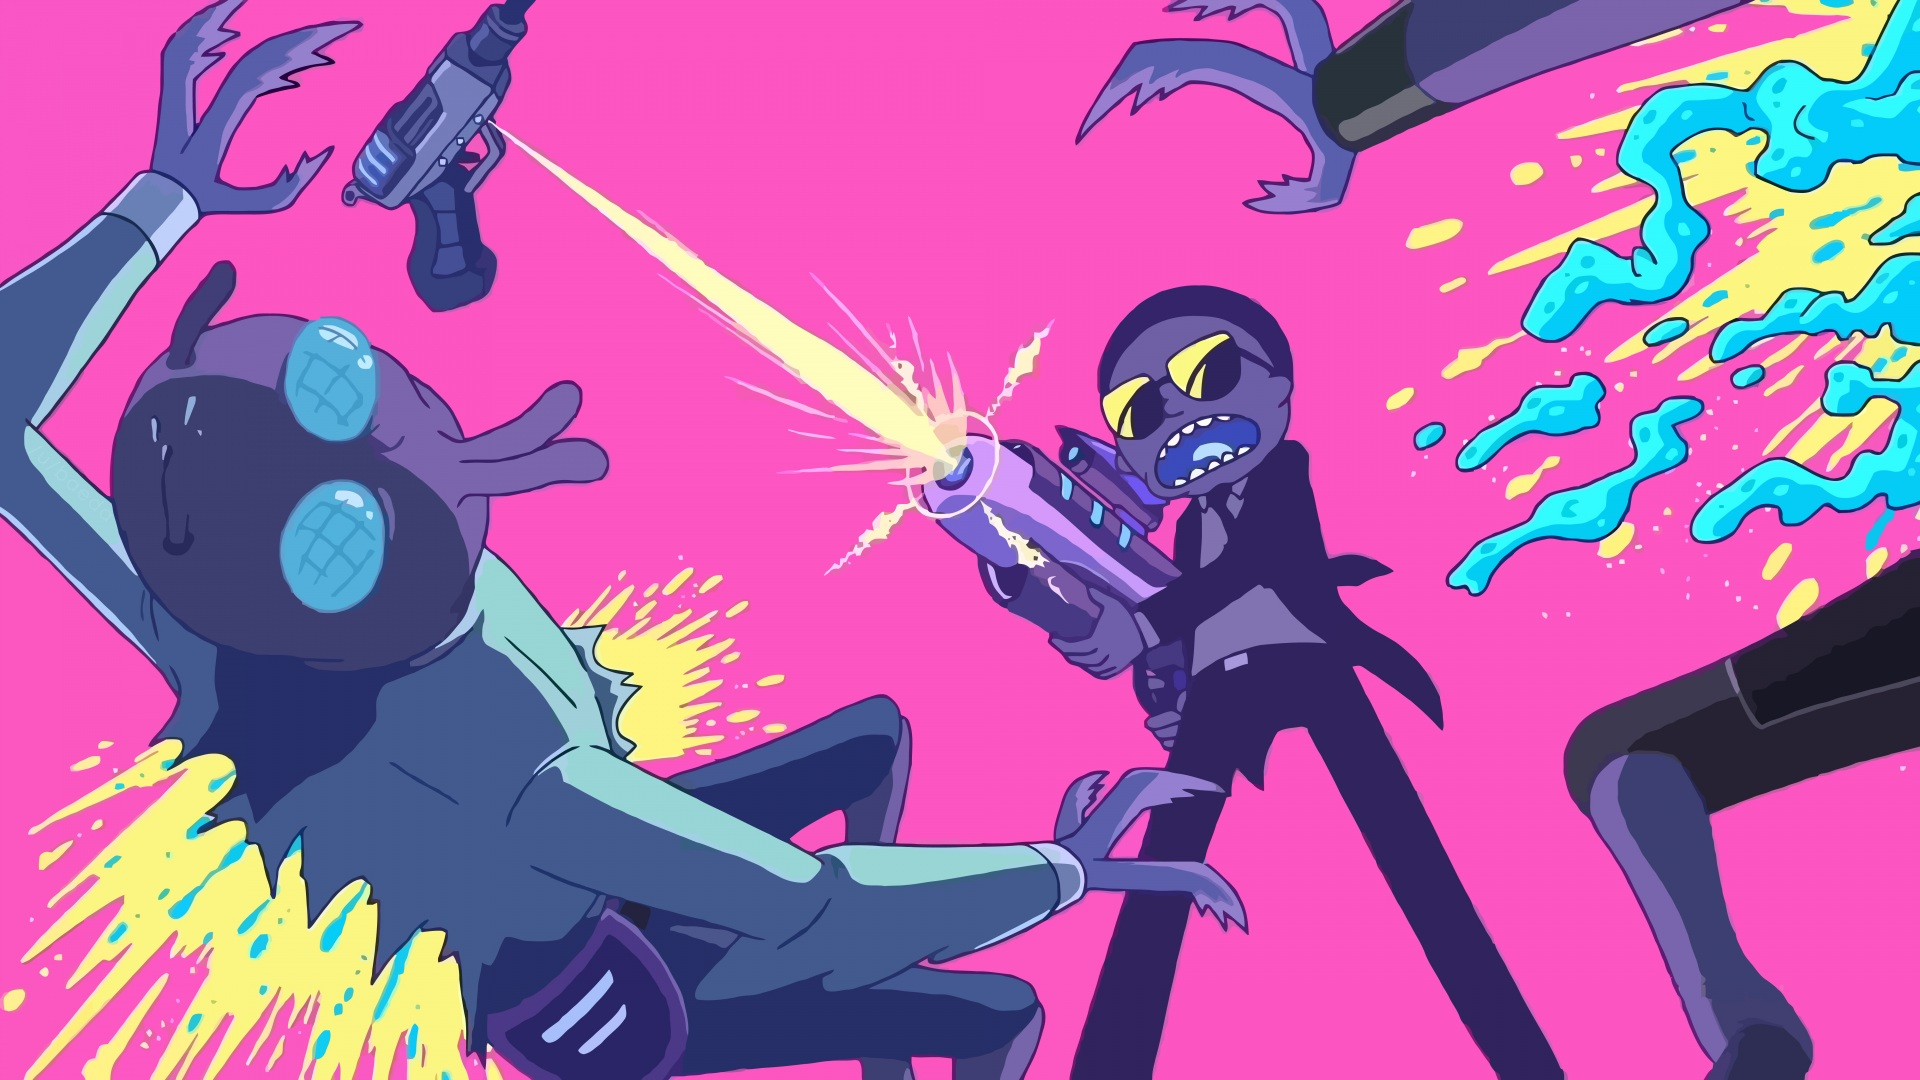 Picture Boys Firing Aliens Rick And Morty Cartoons 1920x1080